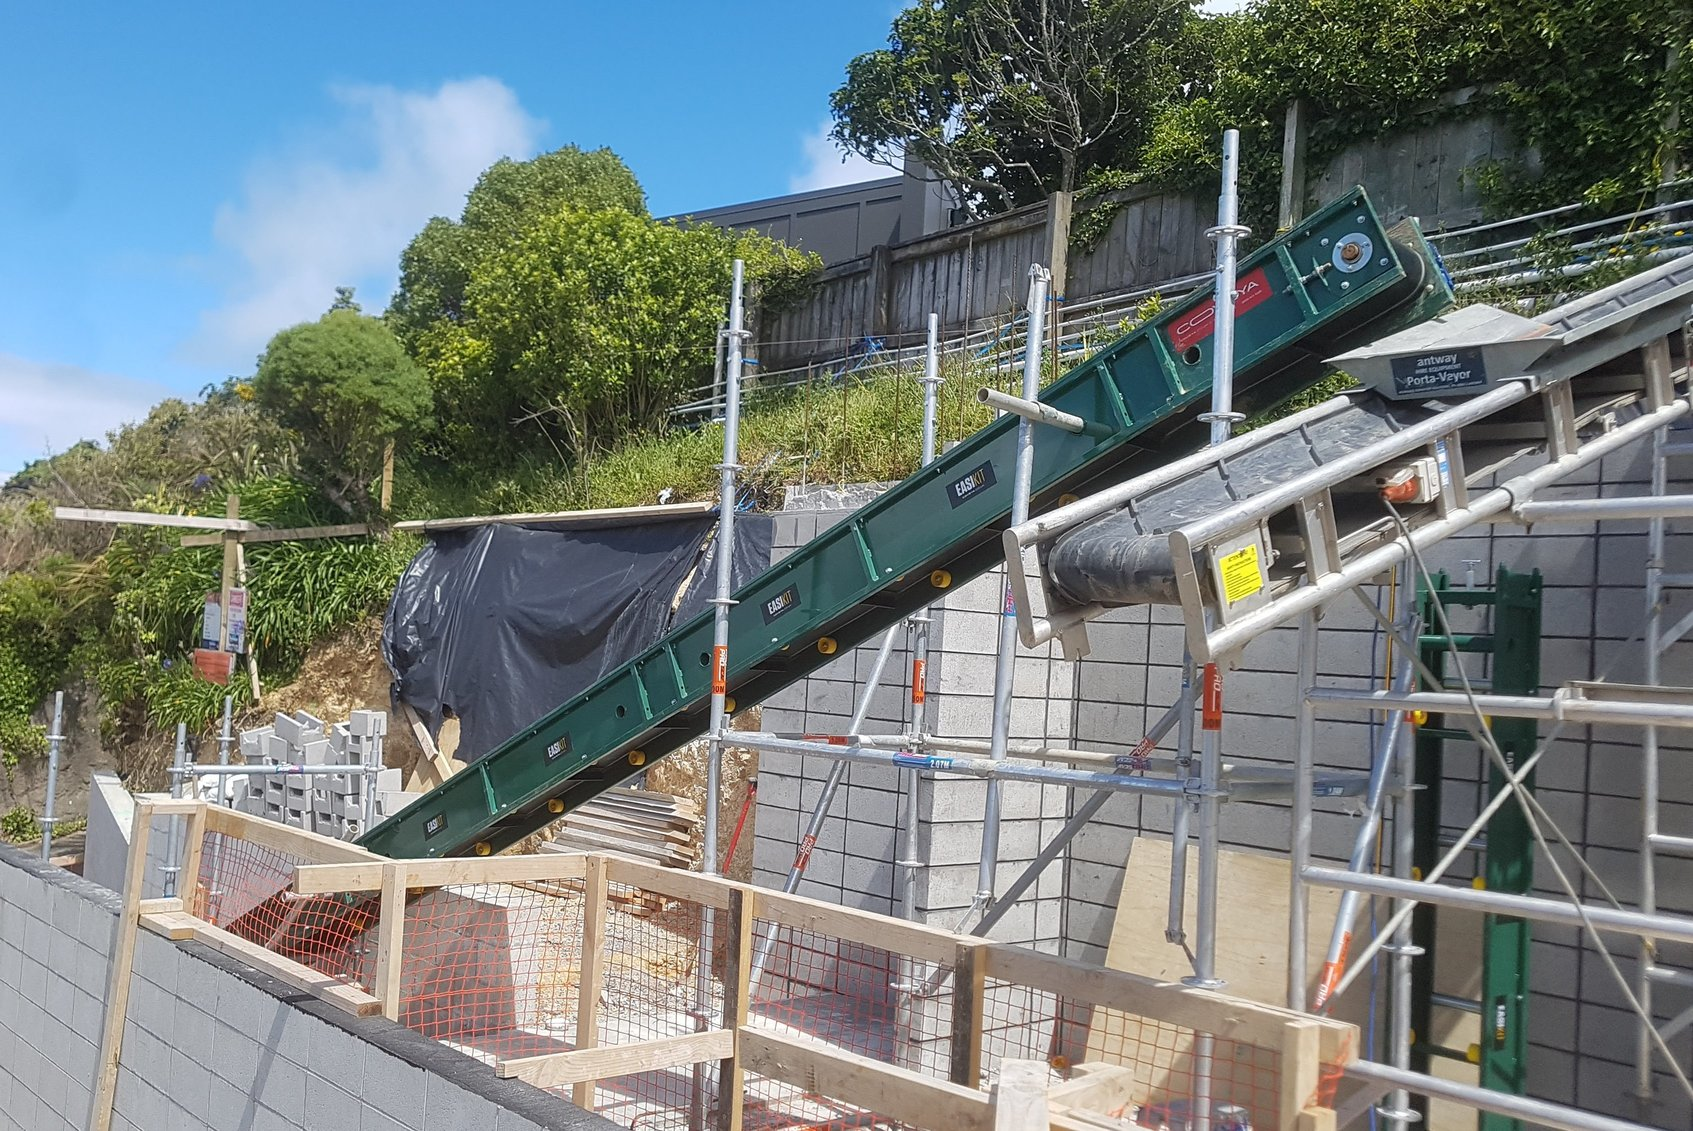 EK300 and PortaVeyor backfilling at tight Wellington site